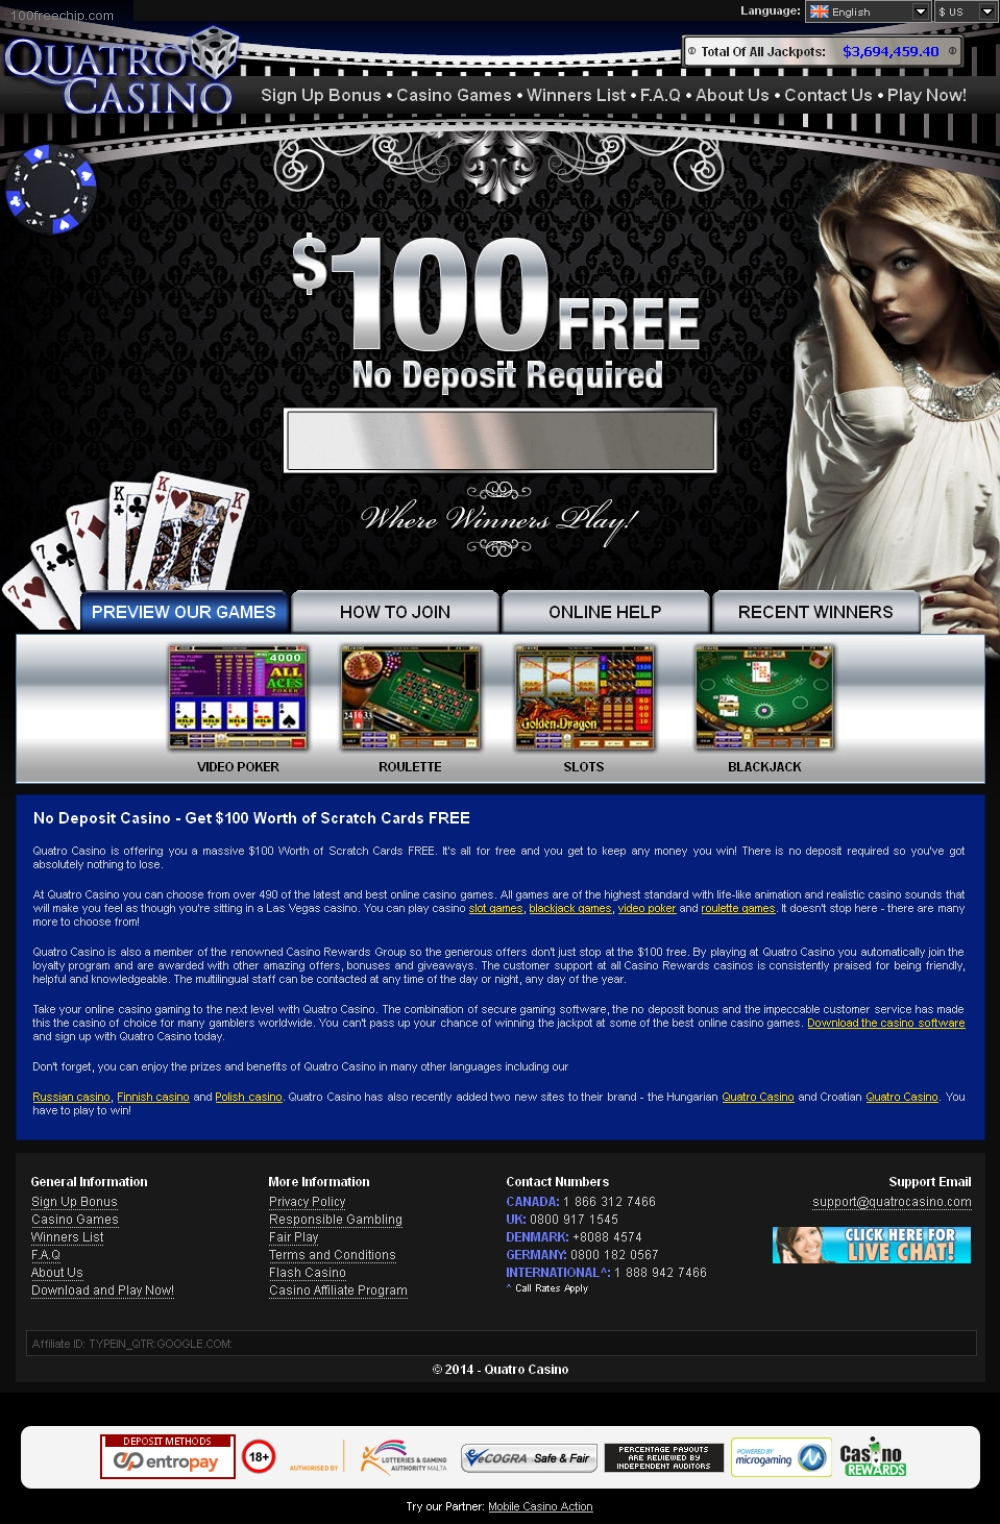 Quatro casino download make money online casino free